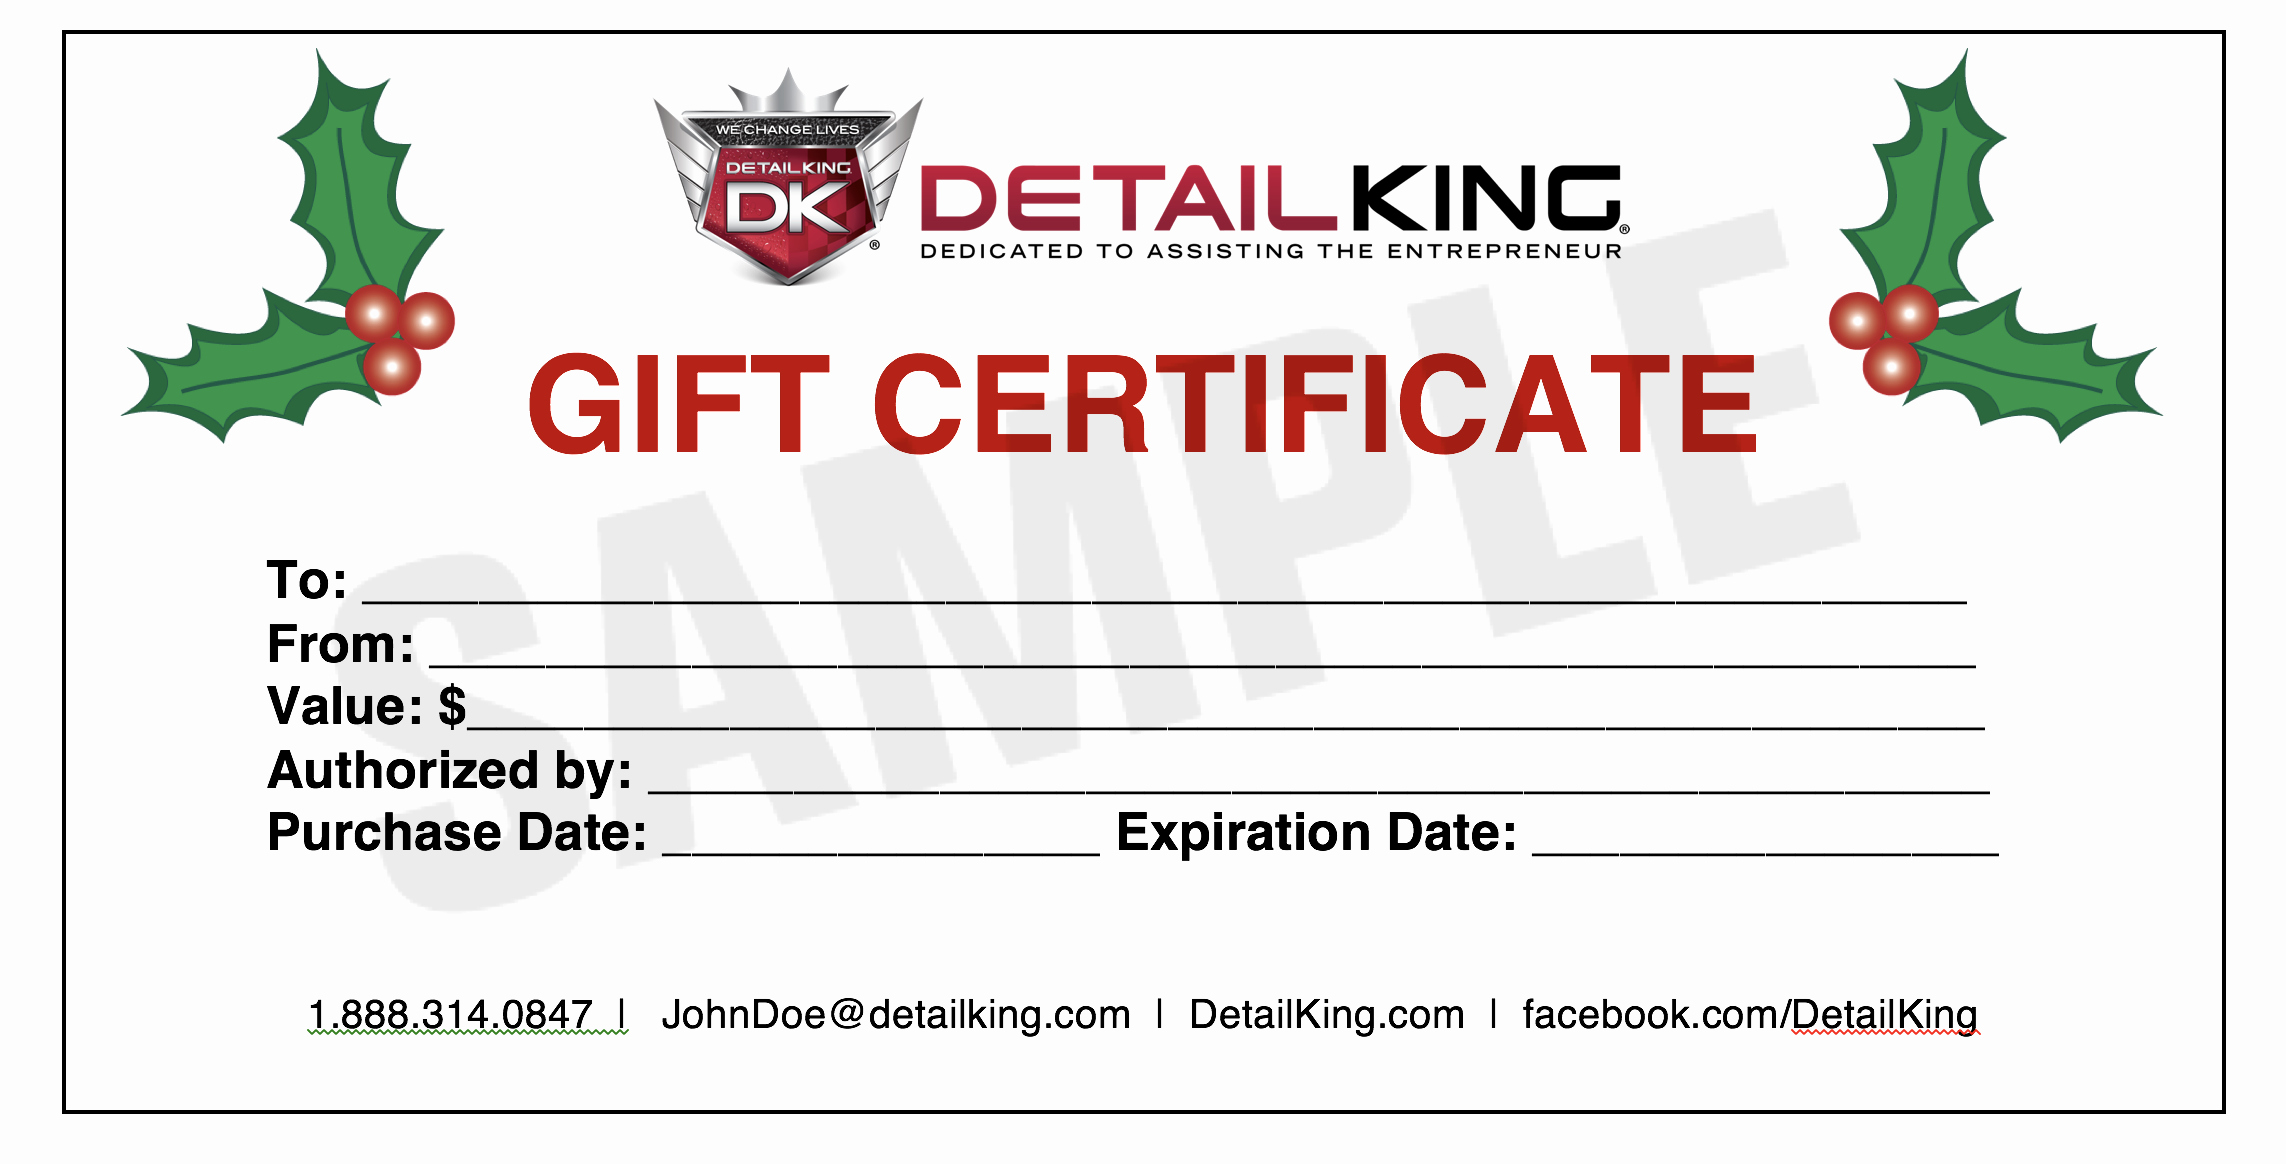 Gift Certificate Samples Free Templates Beautiful Free Business Gift Certificate Template